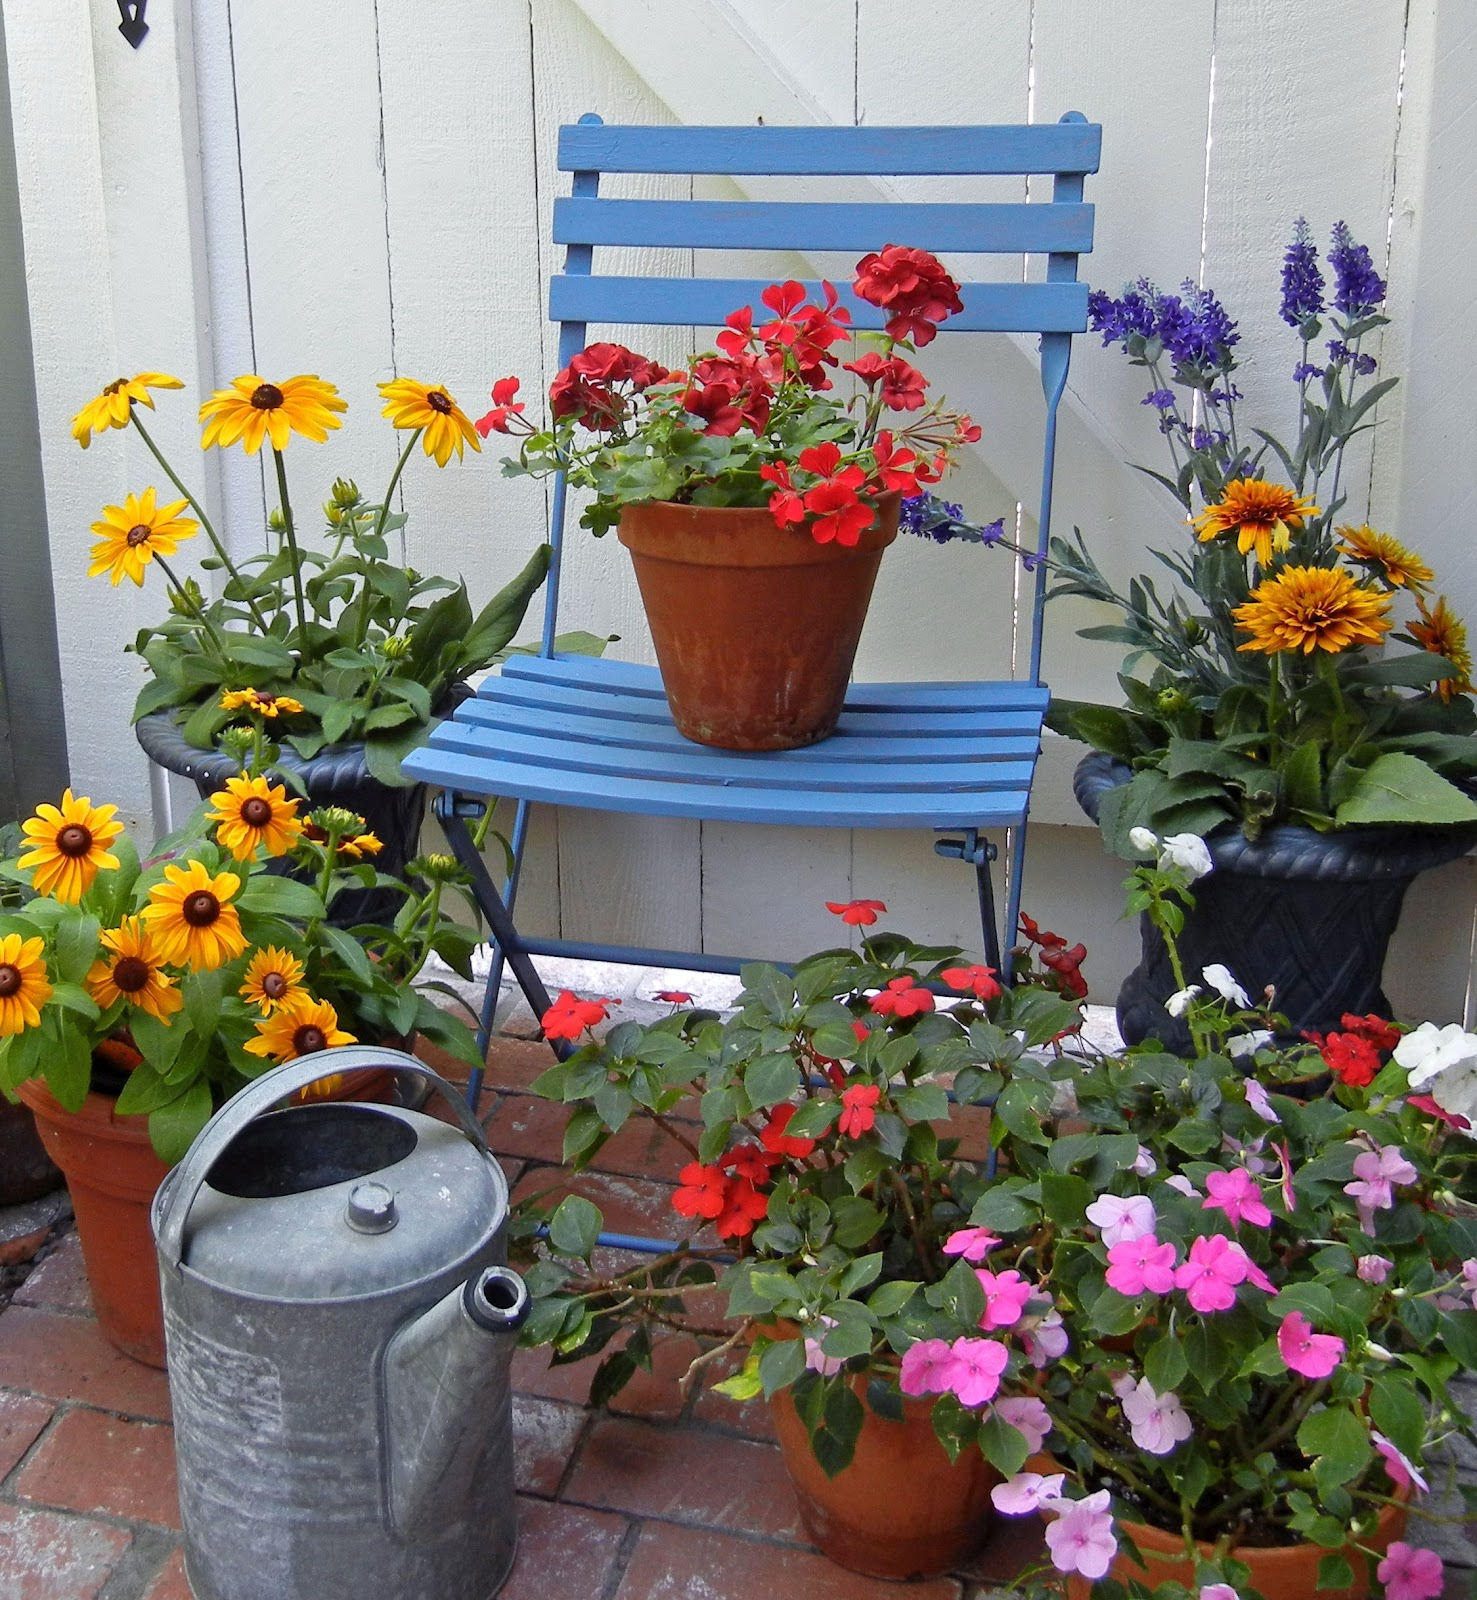 My Painted Garden: Inspirations for Painting A Blue Chair